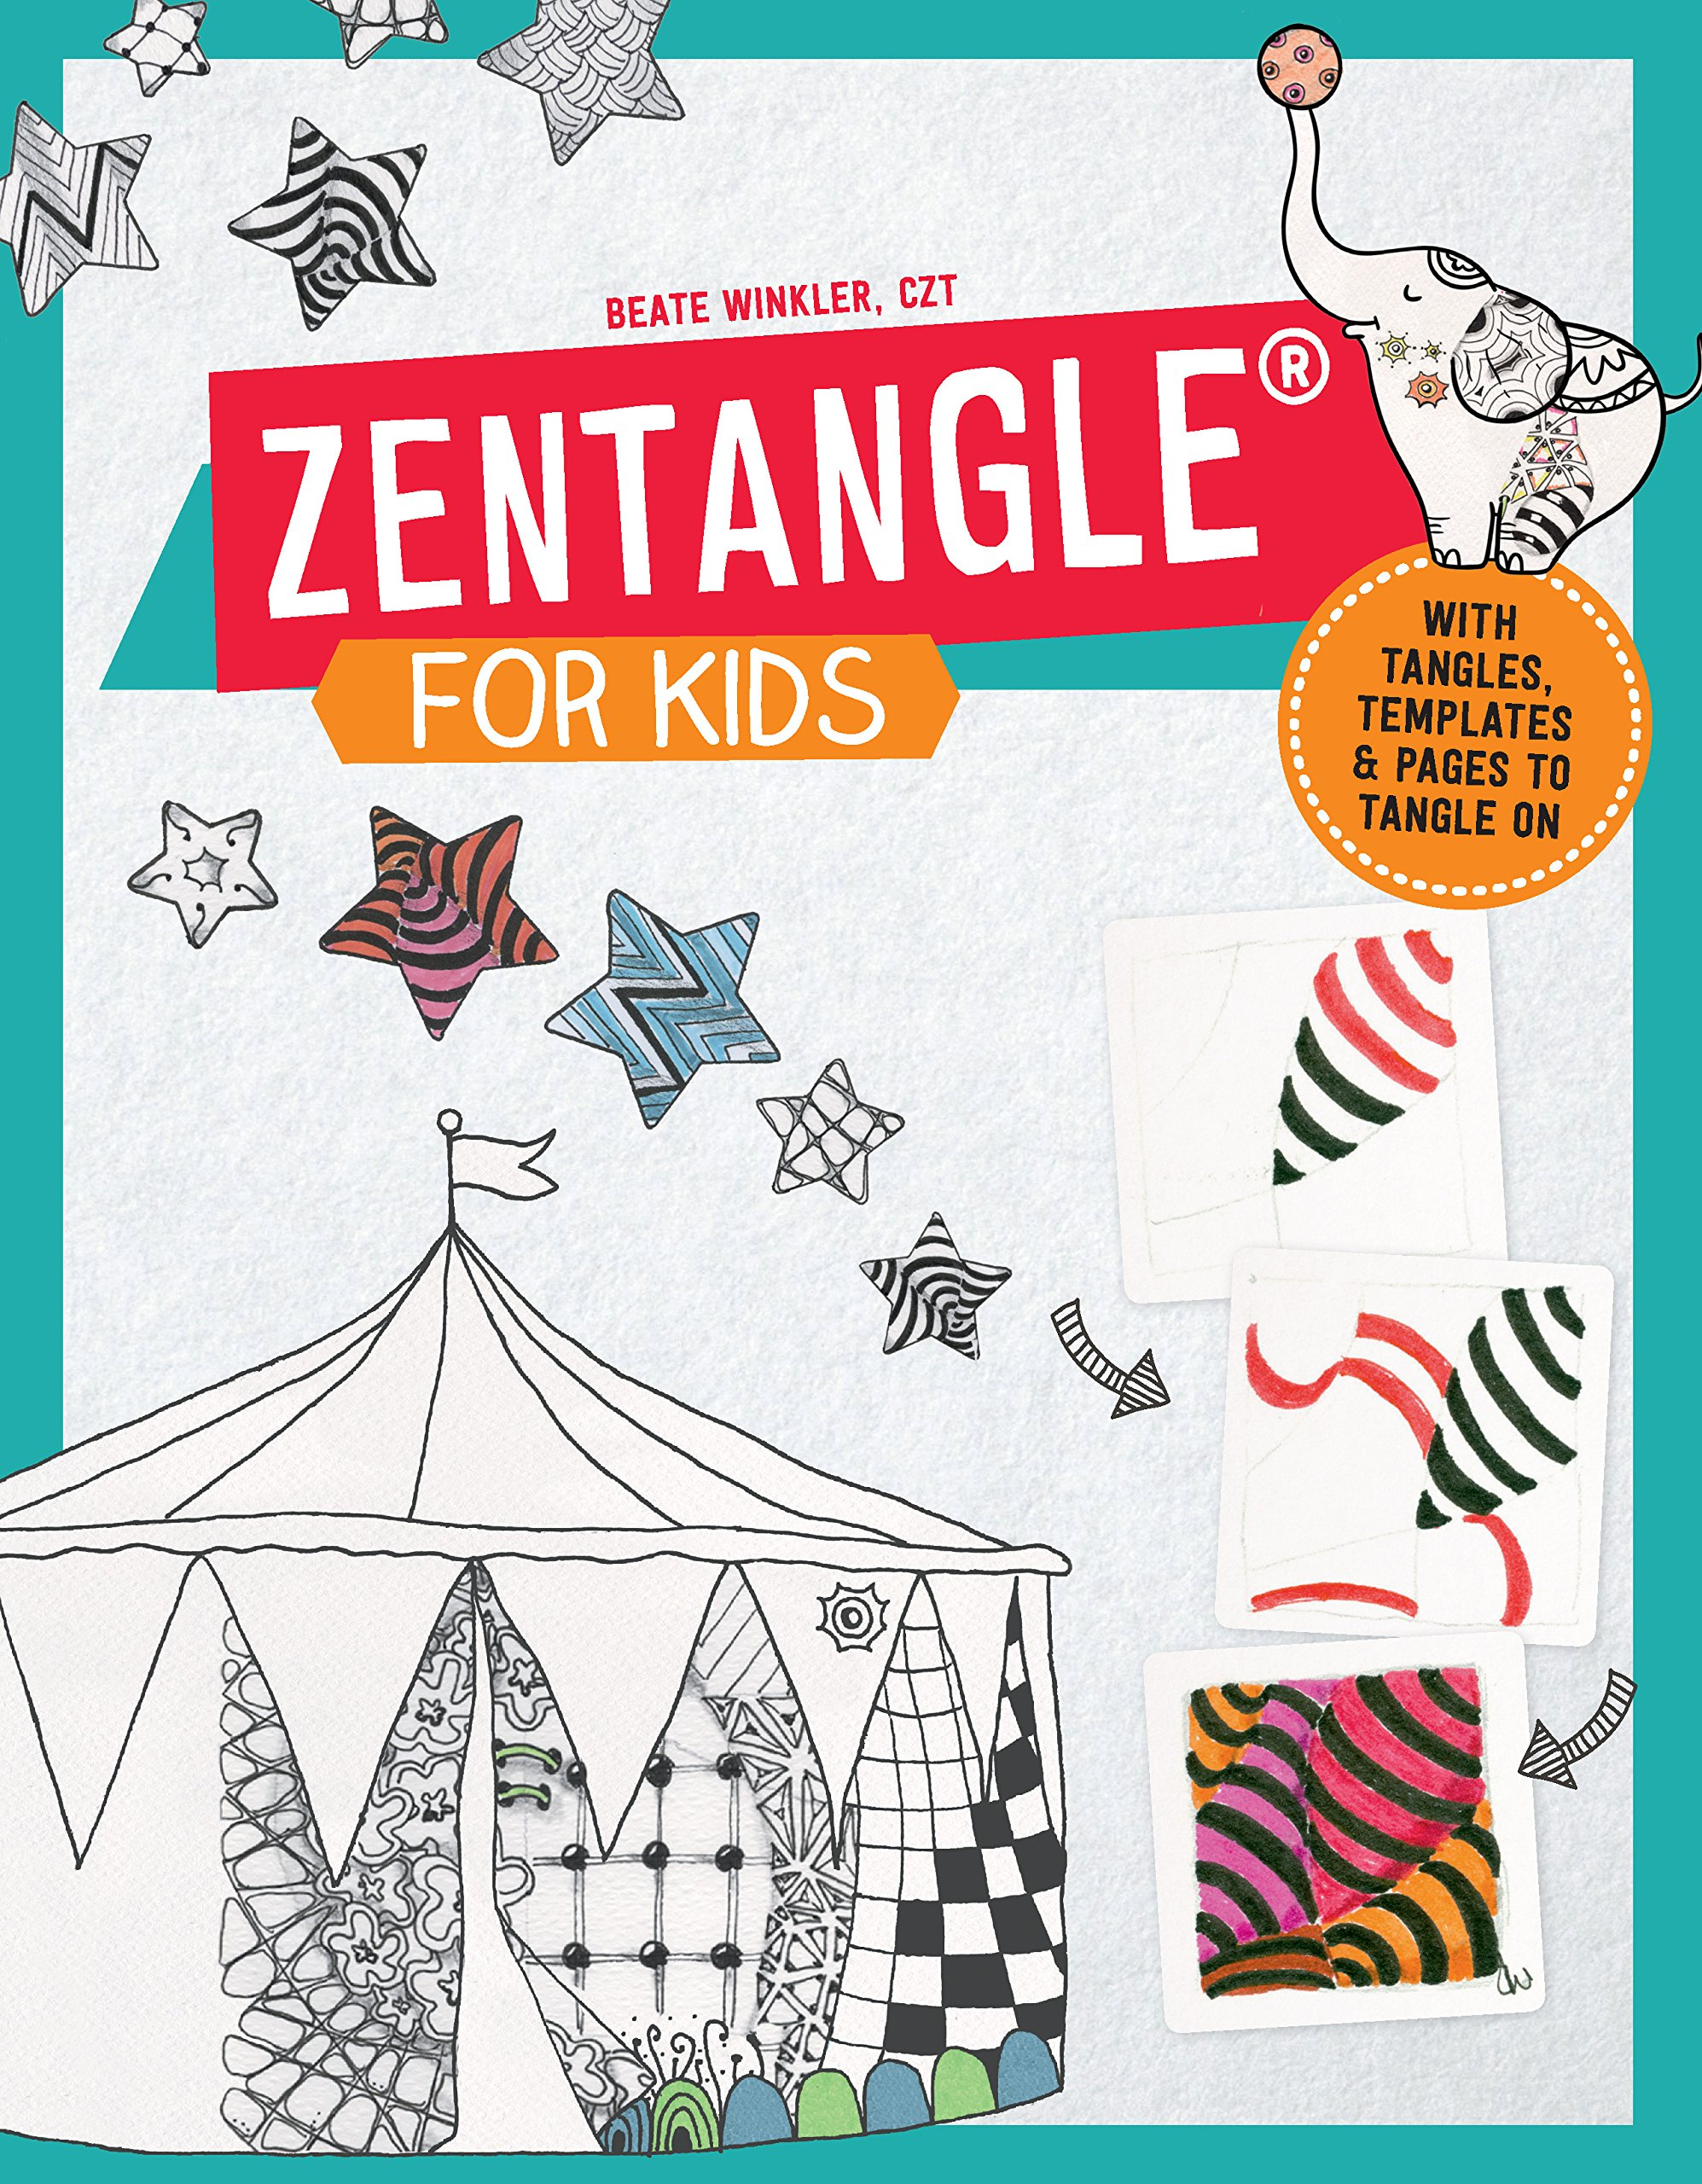 zentangle for kids with tangles templates and pages to tangle on beate winkler 9781631592584 amazoncom books